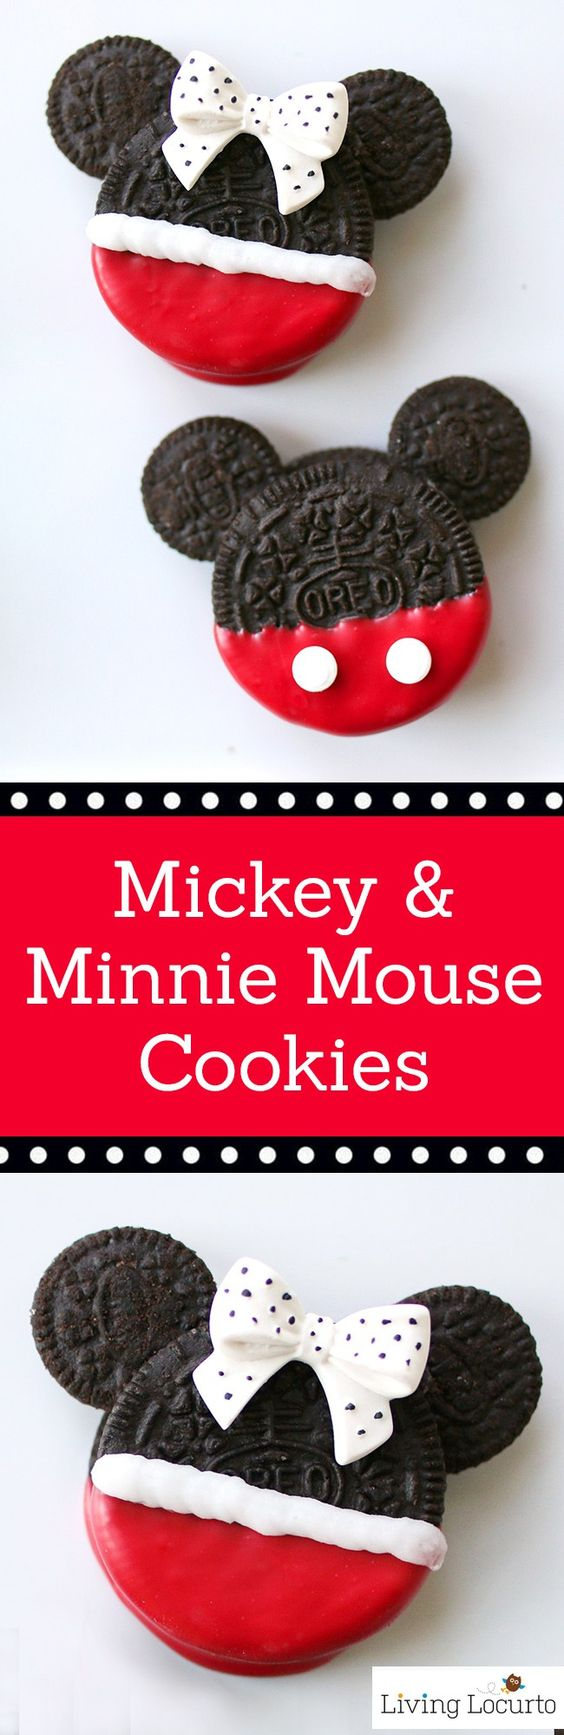 Cute Disney Themed No-Bake Cookies! Mickey and Minnie Mouse Oreo Cookies are perfect for a Disney Birthday Party or Everyday Fun Food Idea for Kids! LivingLocurto.com: